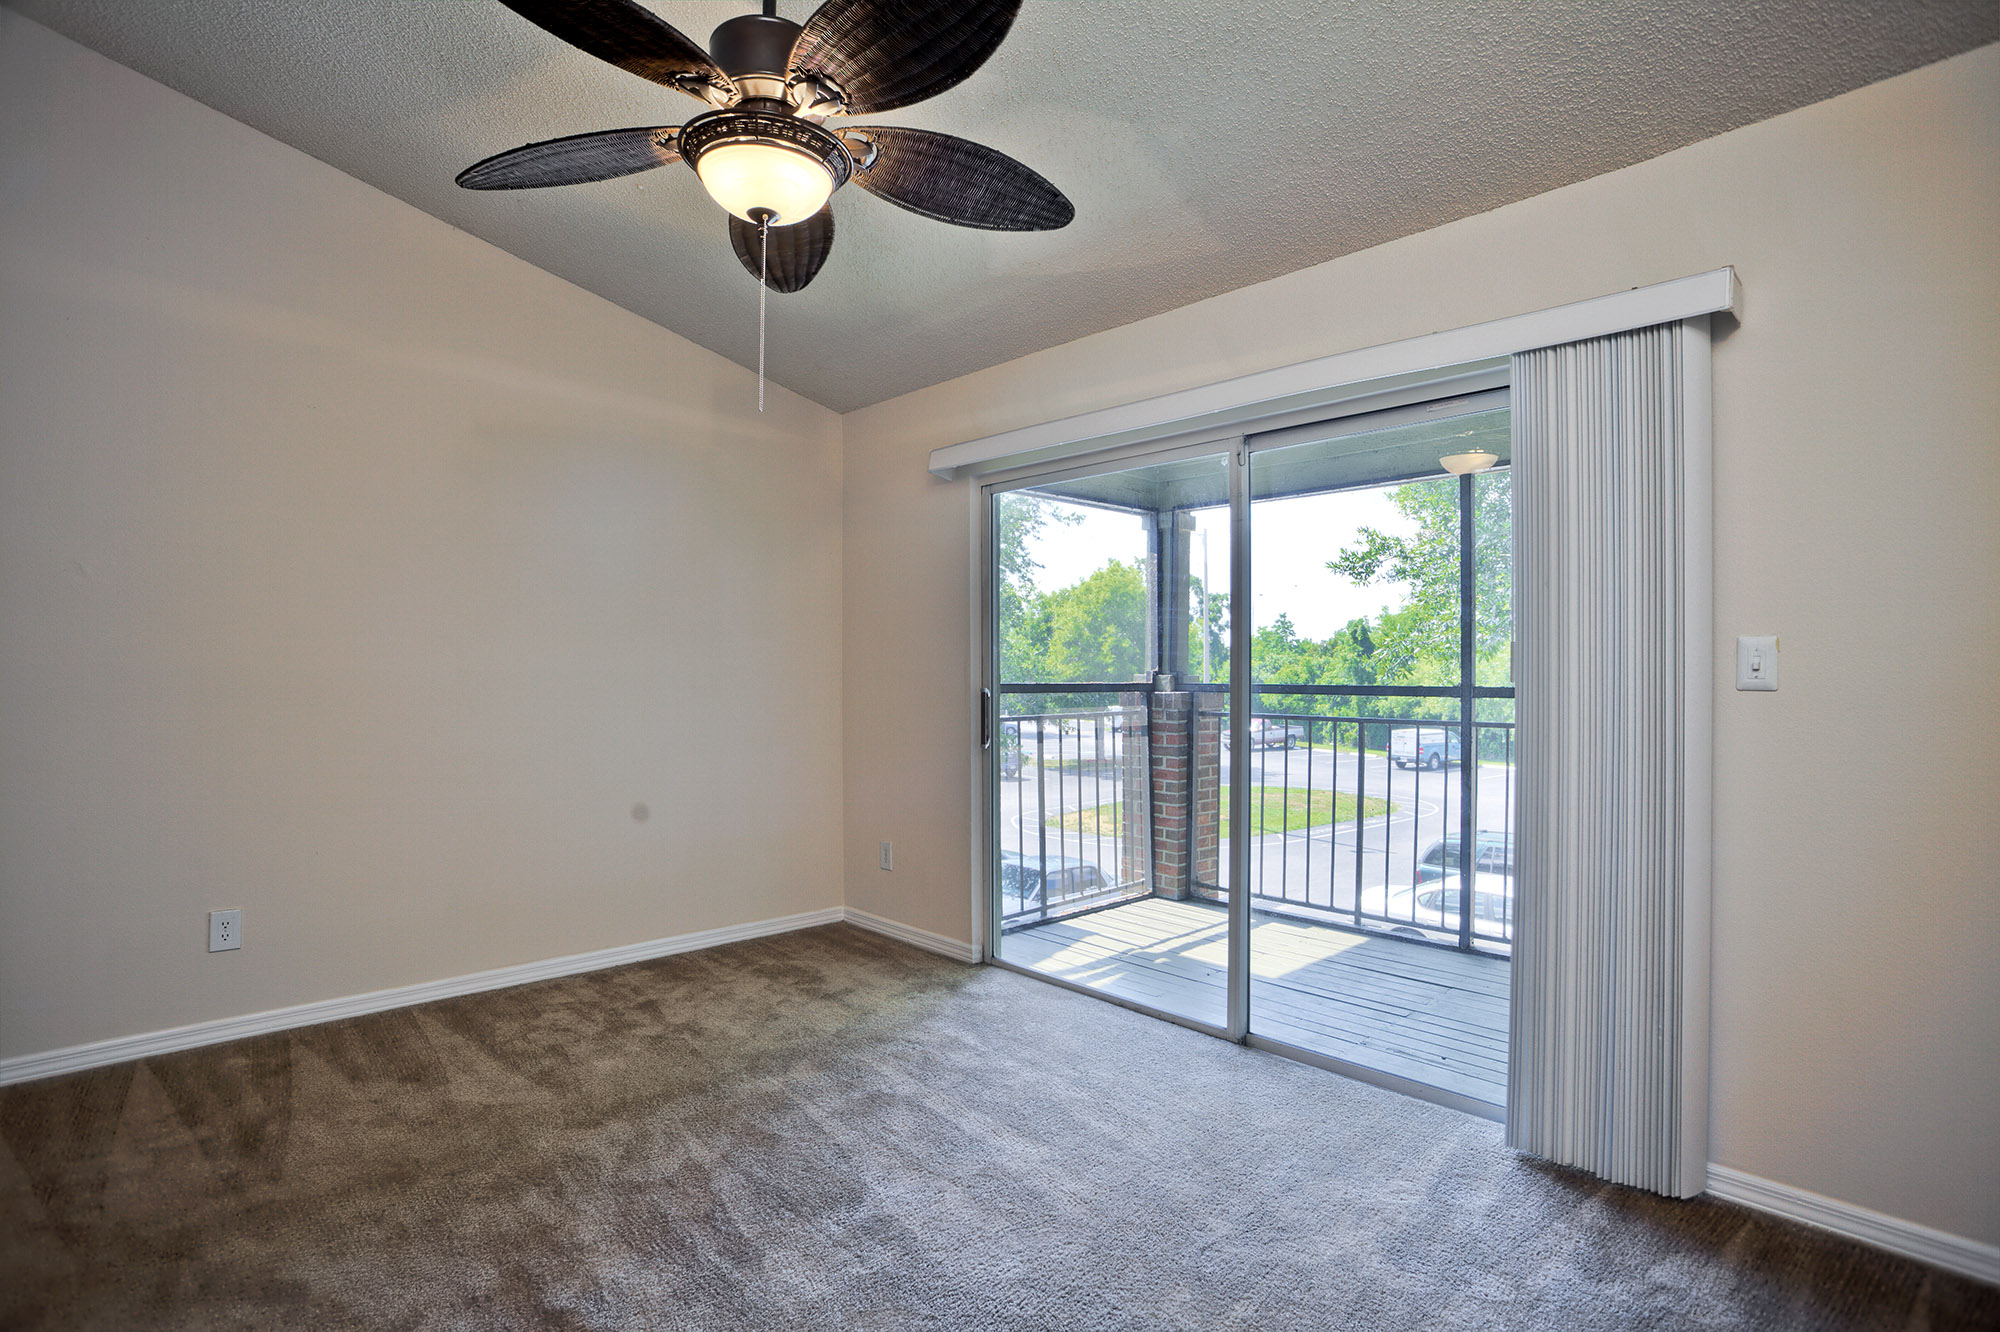 CharlestonLandings-Rental-Apartment-Brandon-Tampa-Florida-Interior1.jpg